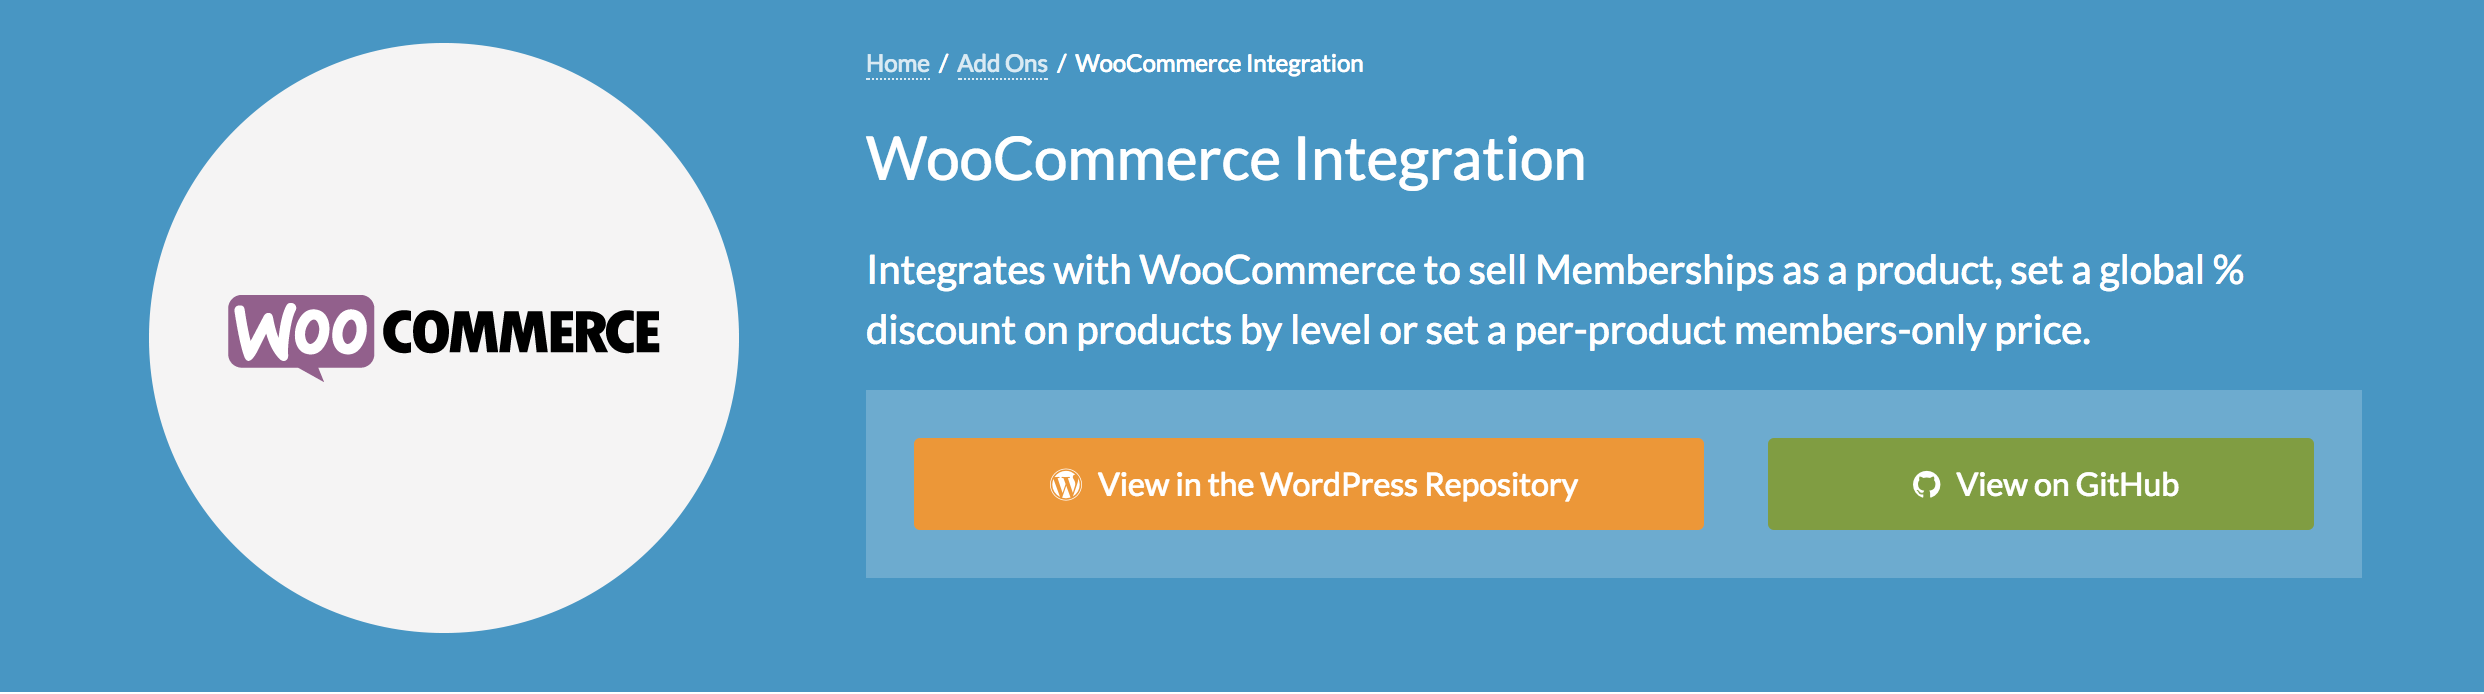 WooCommerce Integration with PMPro